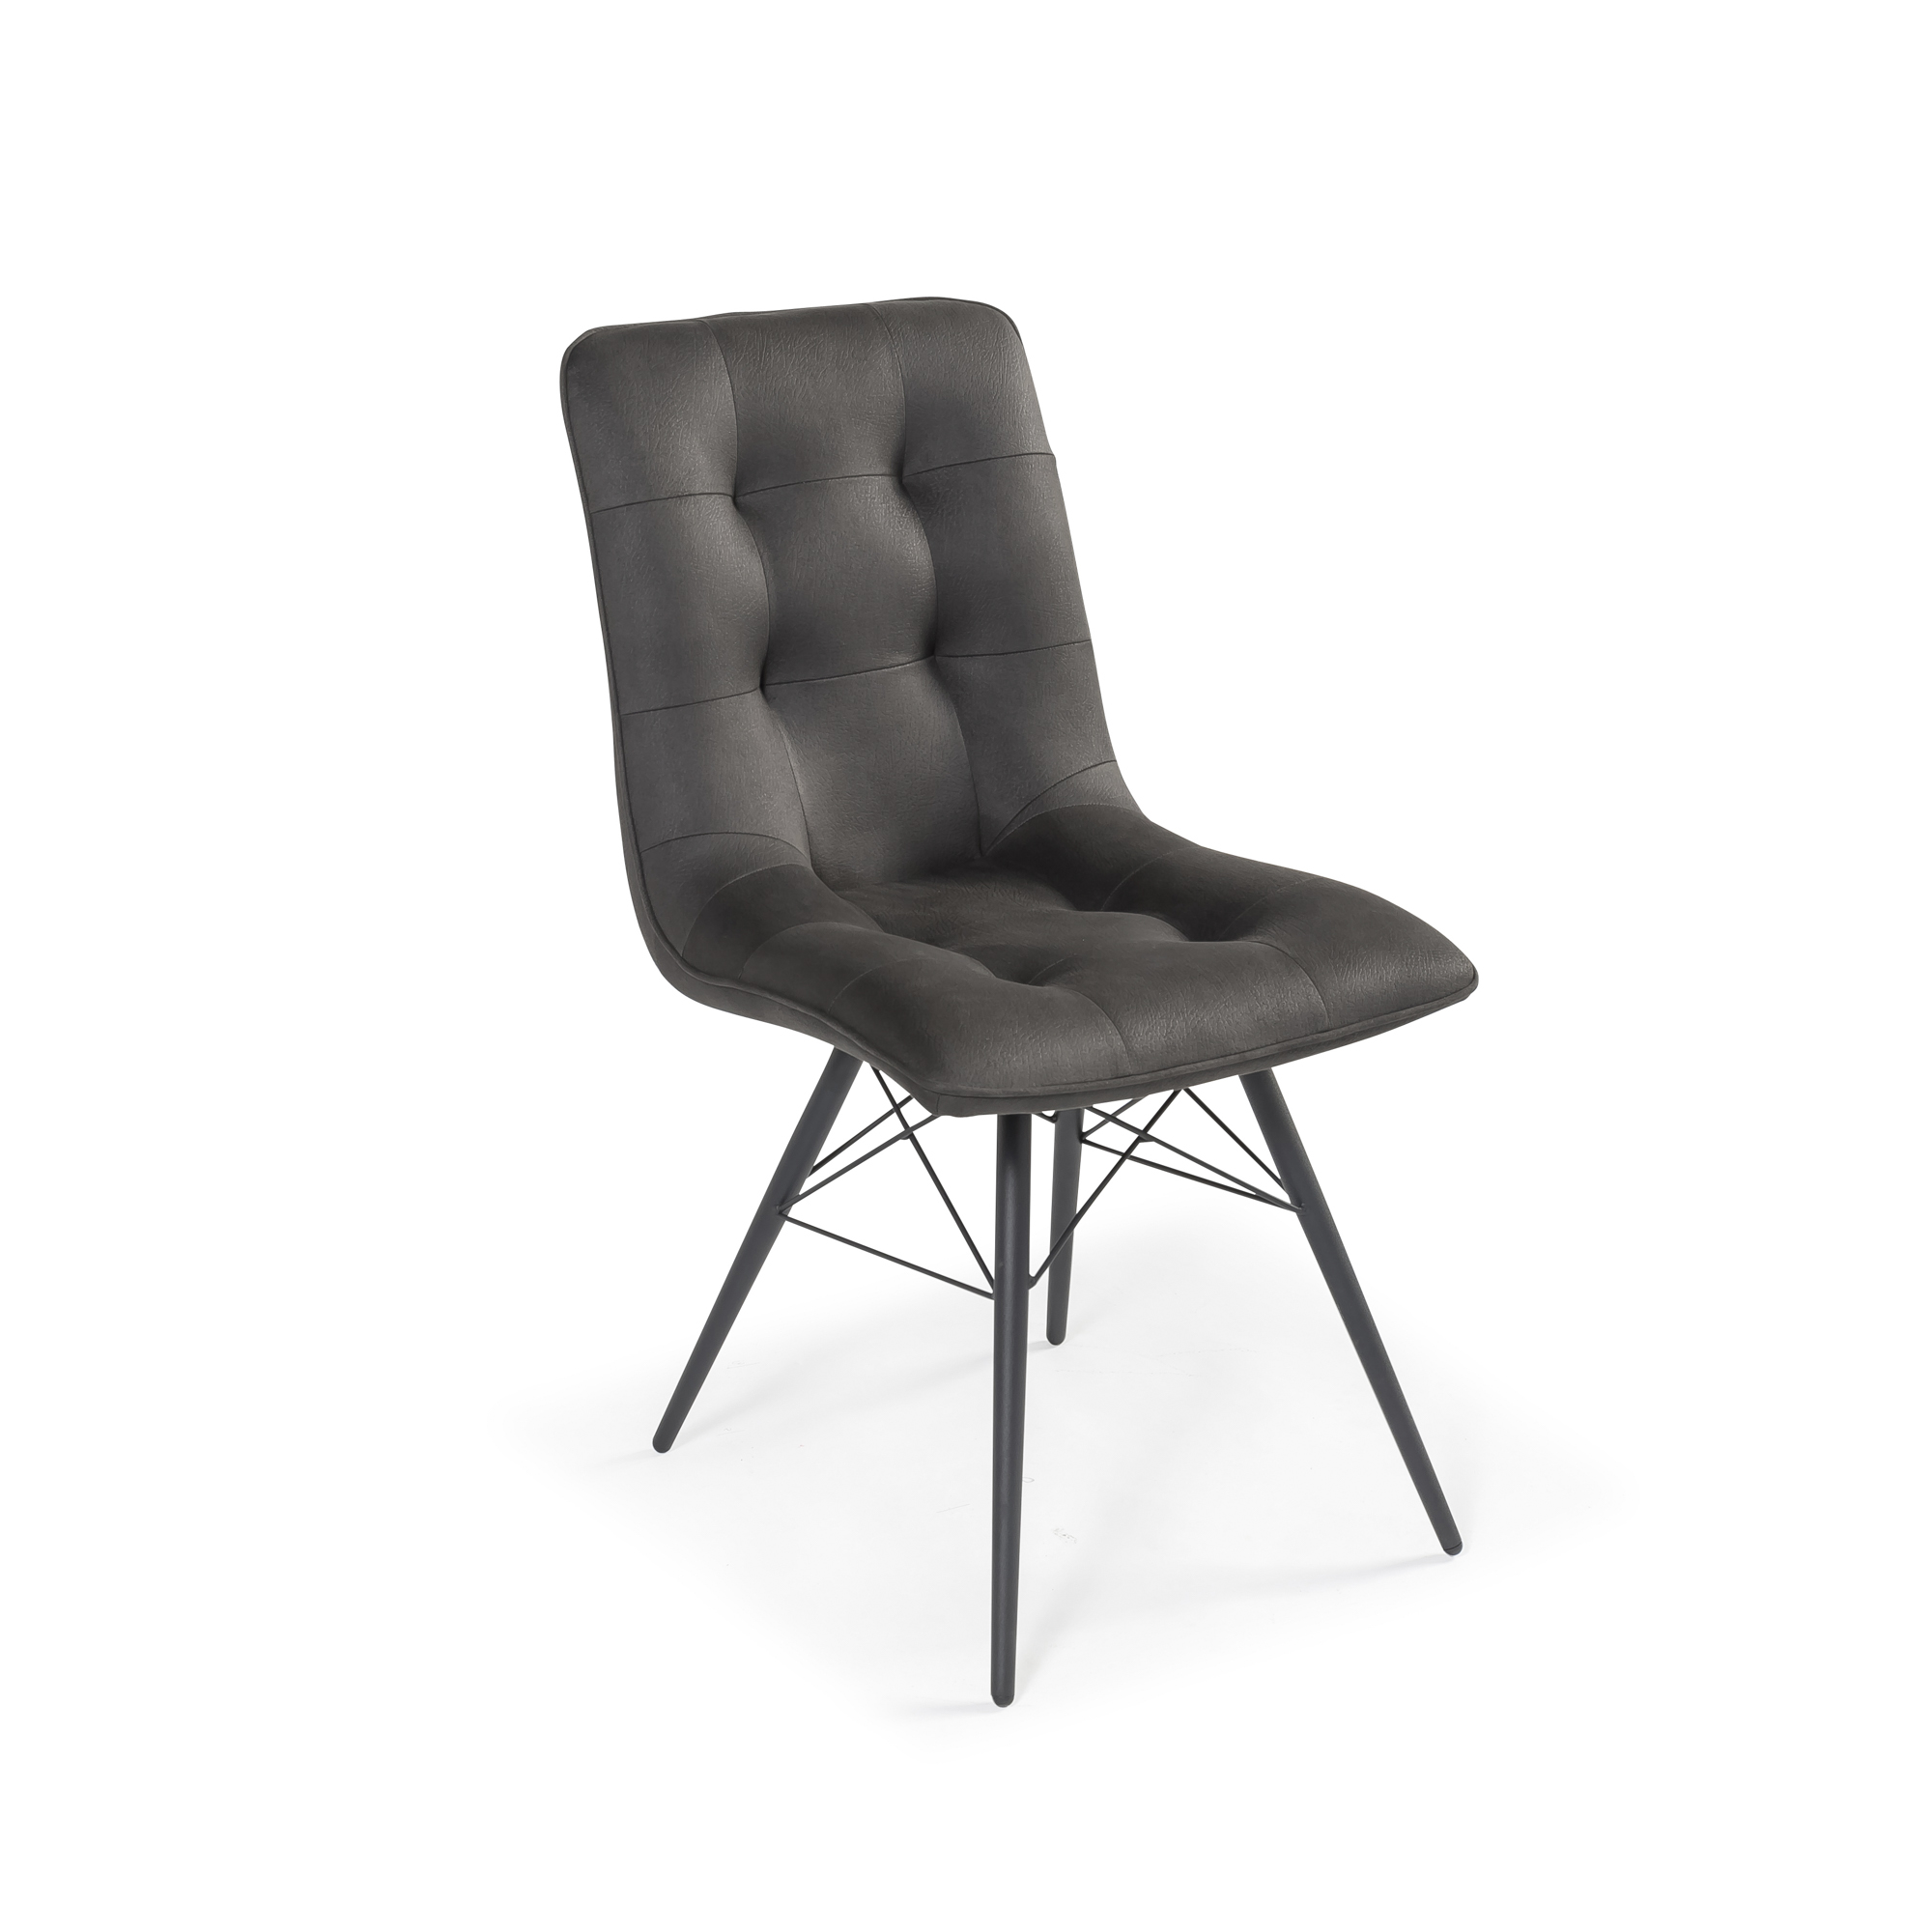 Madrid Grey Upholstered Modern Dining Chair (Set of 2)